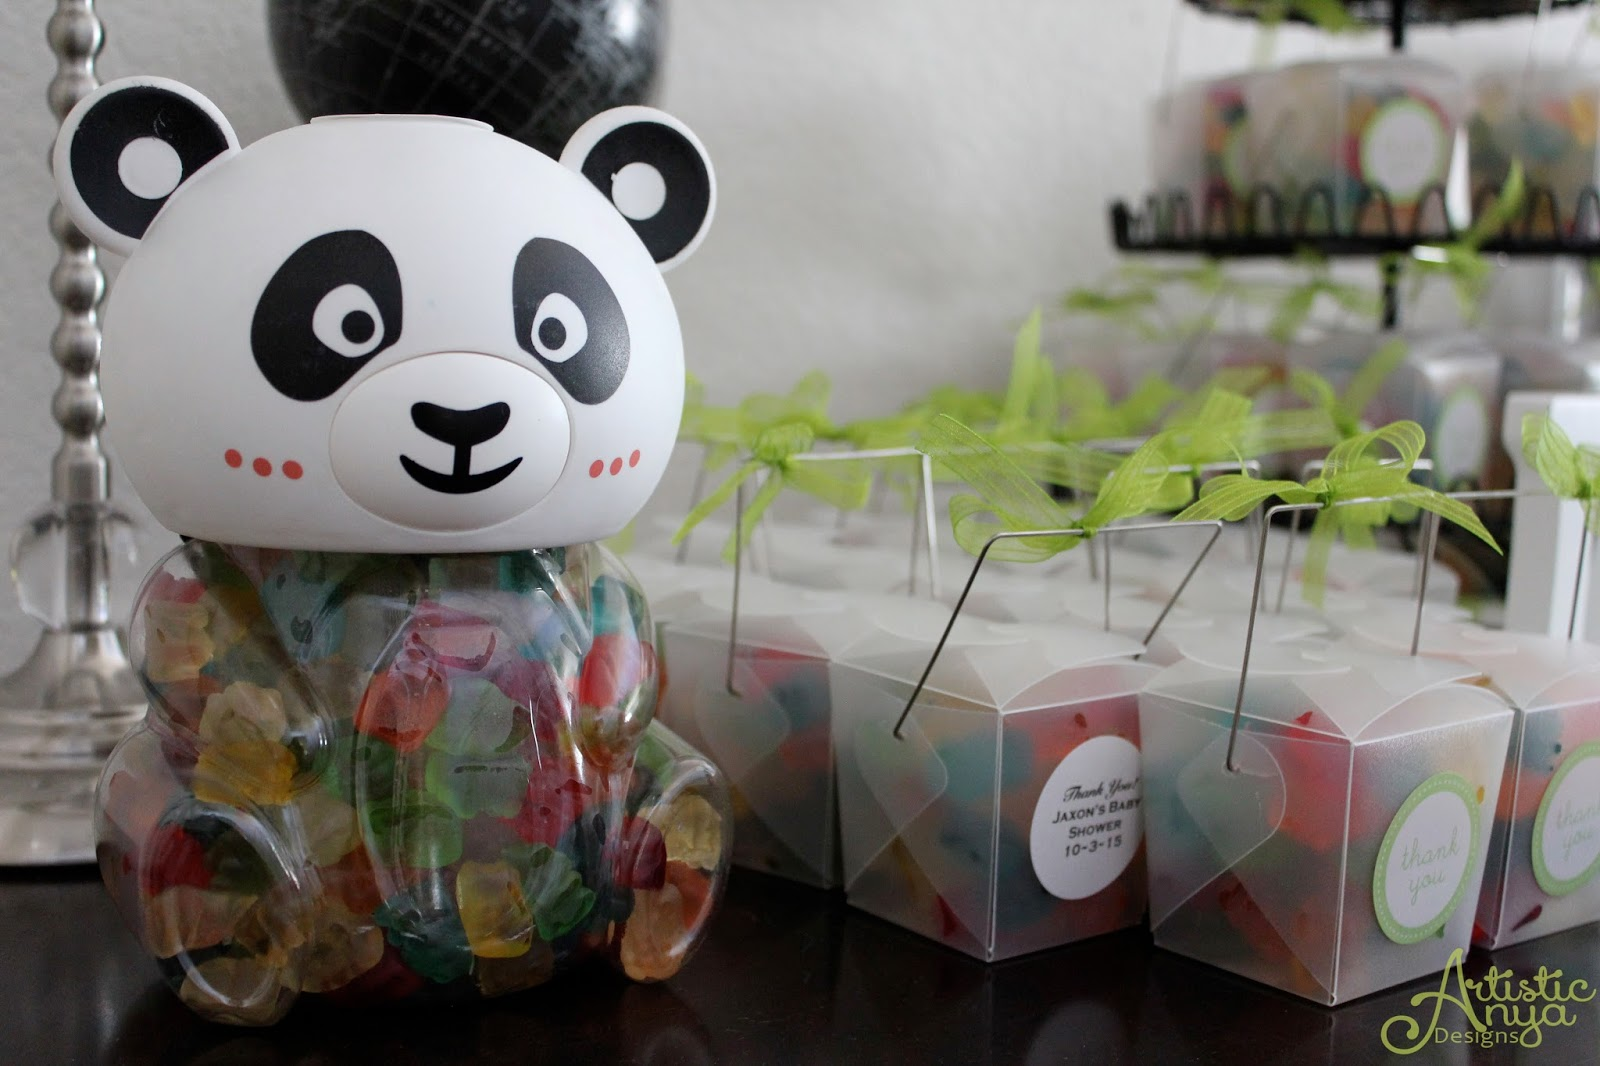 Artistic Anya Designs: Ultimate Panda Party